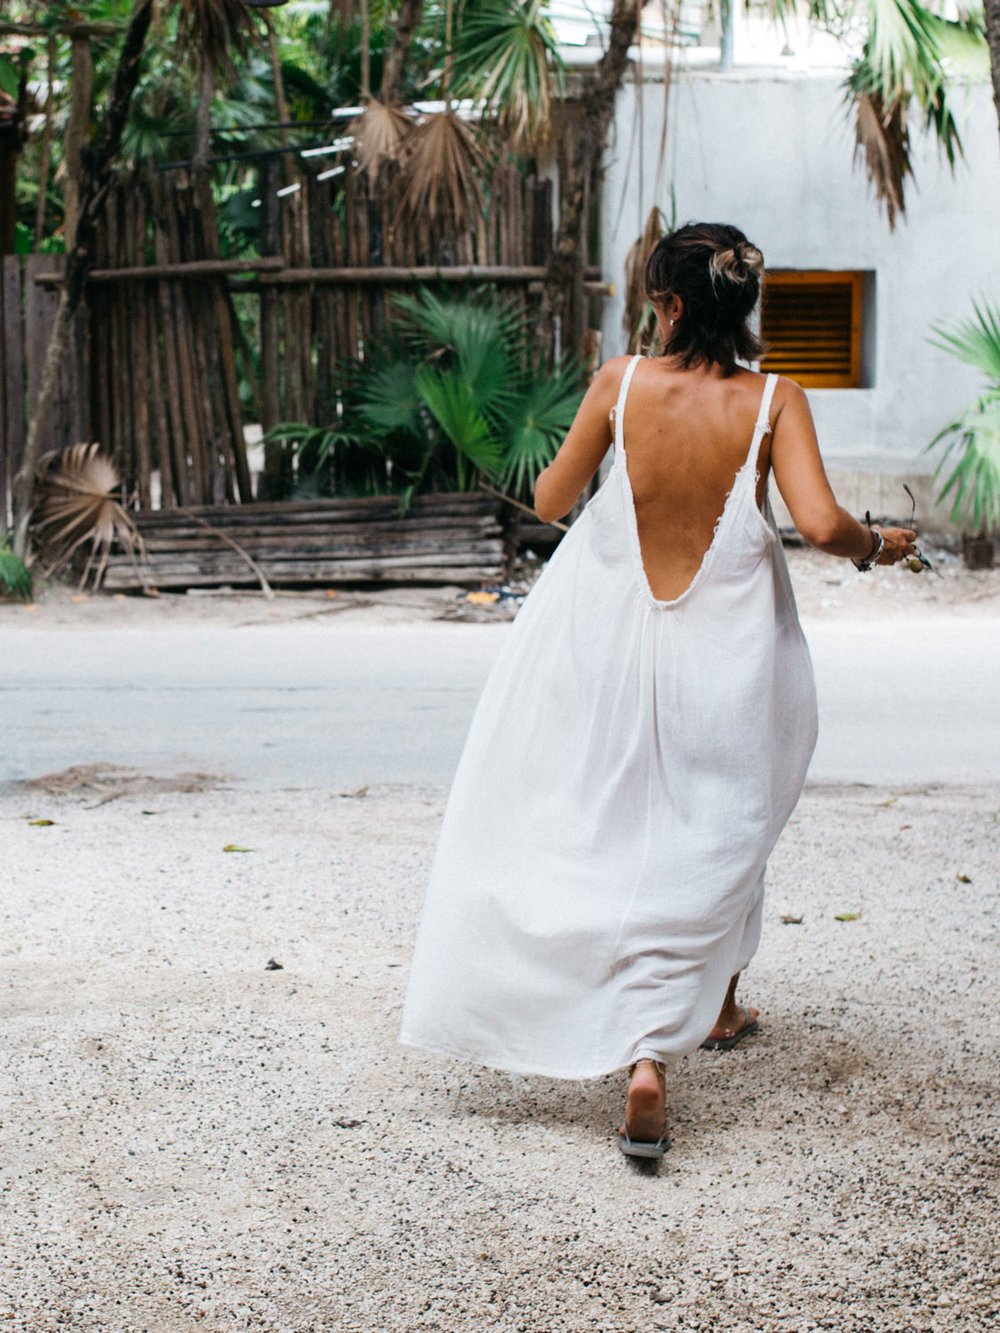 The_Ink_Collective_Inside_Ink_Articles_Travel_Review_Tulum_Bohemian_Paradise_5.jpg